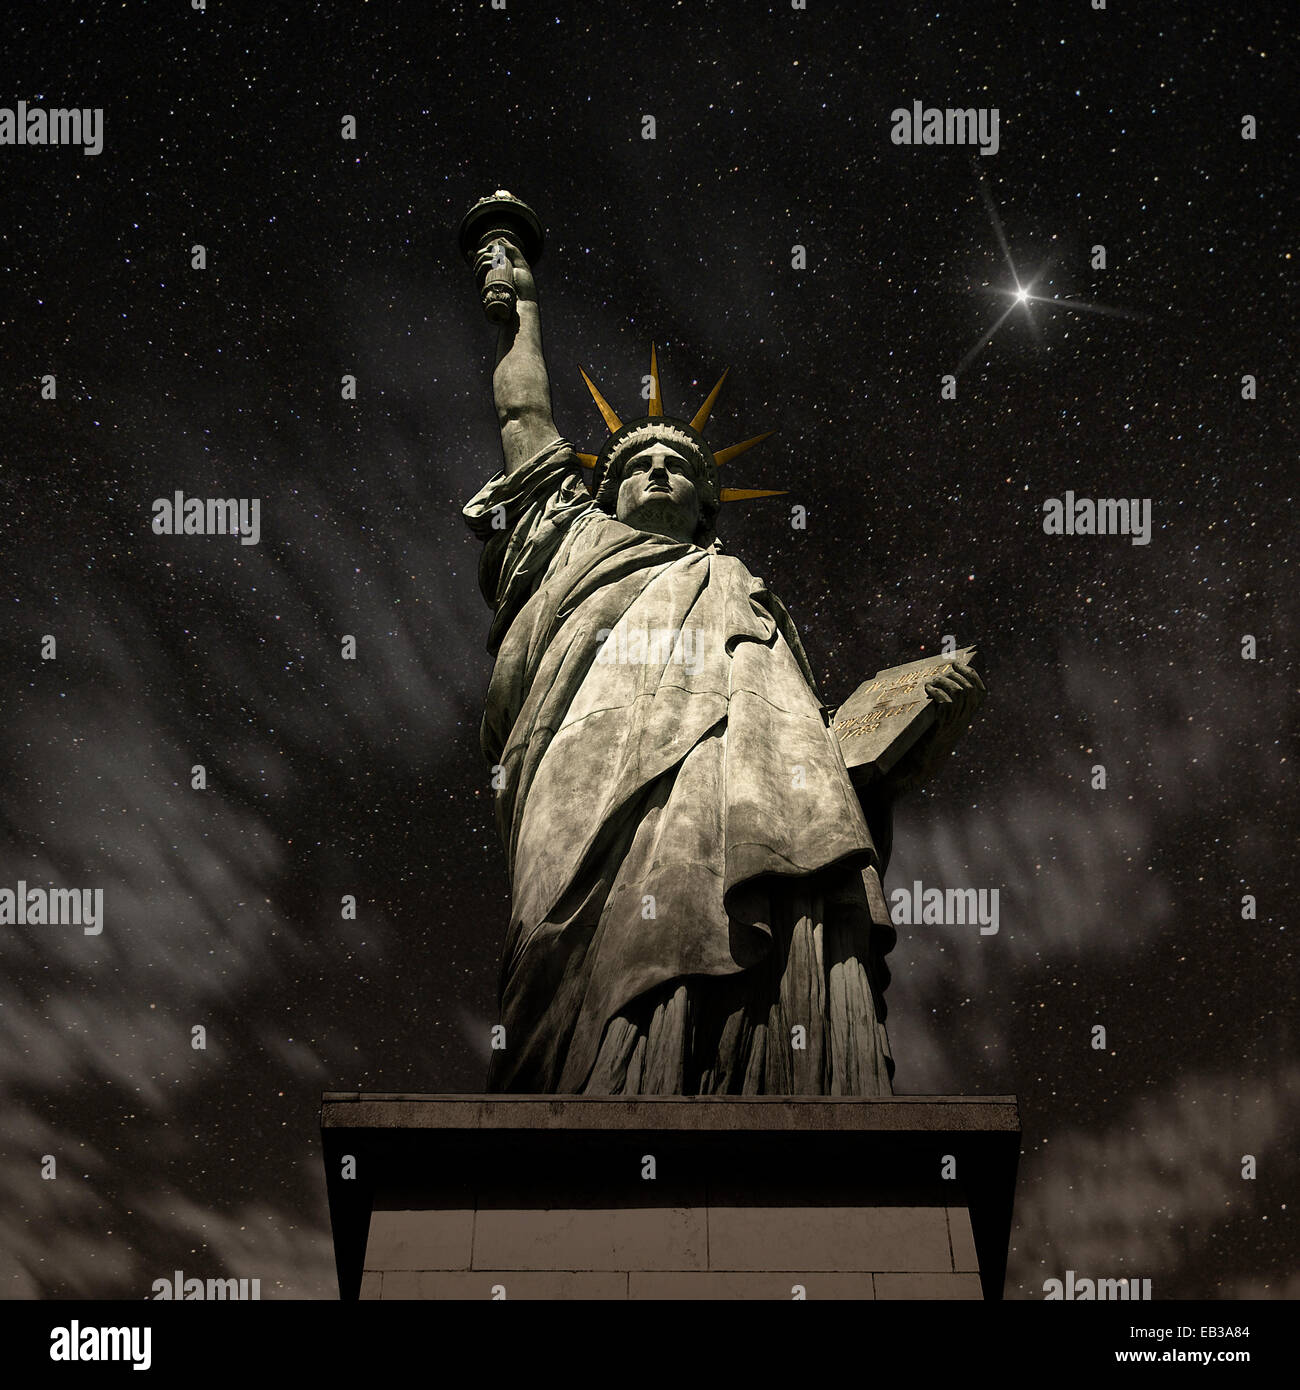 USA, New York State, New York, Statue of Liberty at night - Stock Image